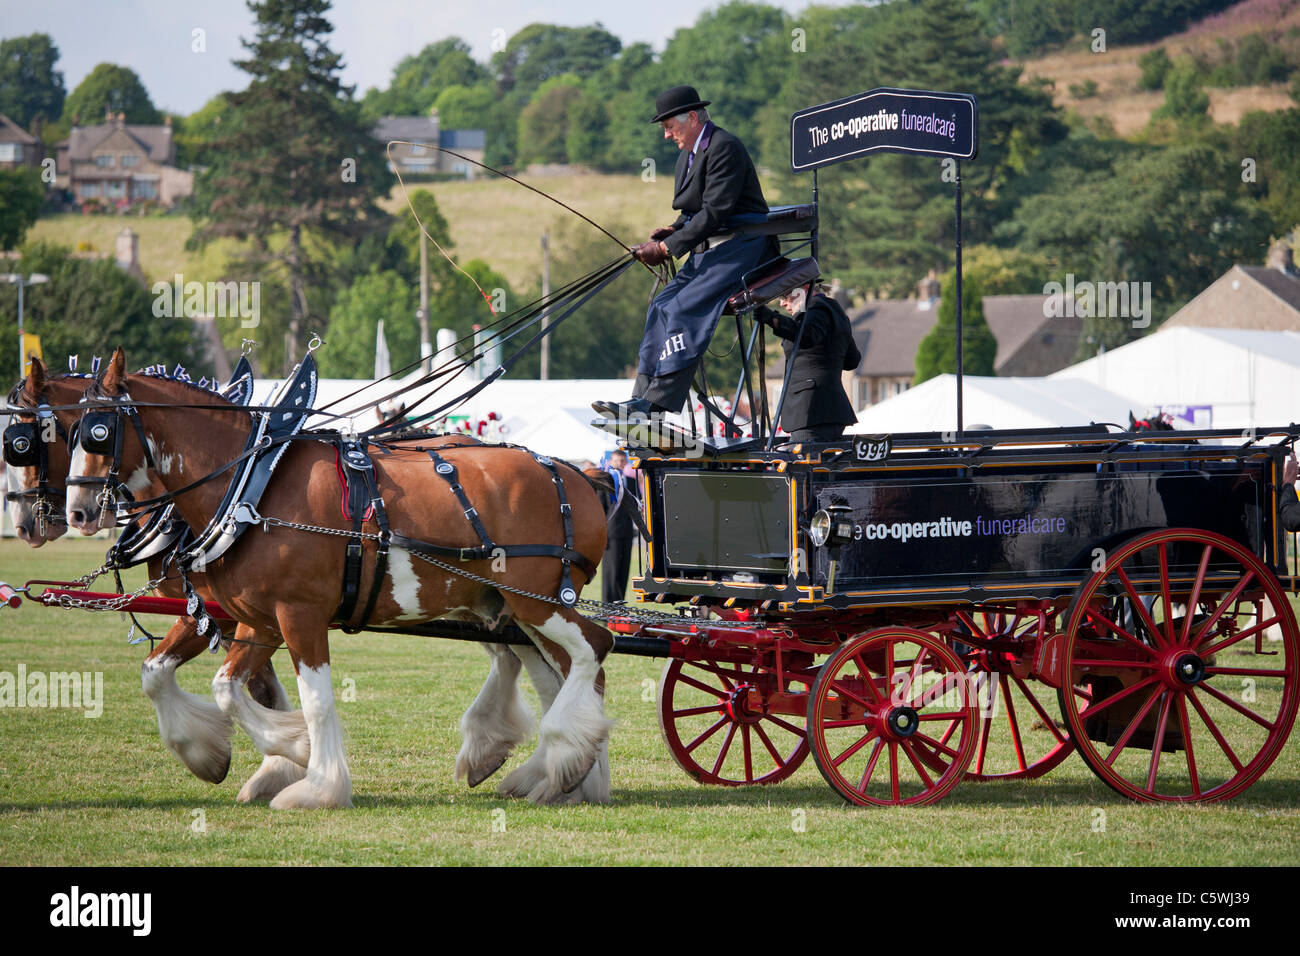 Heavy Horse Turnouts at the Bakewell Show, Bakewell, Derbyshire, England, UK - Stock Image